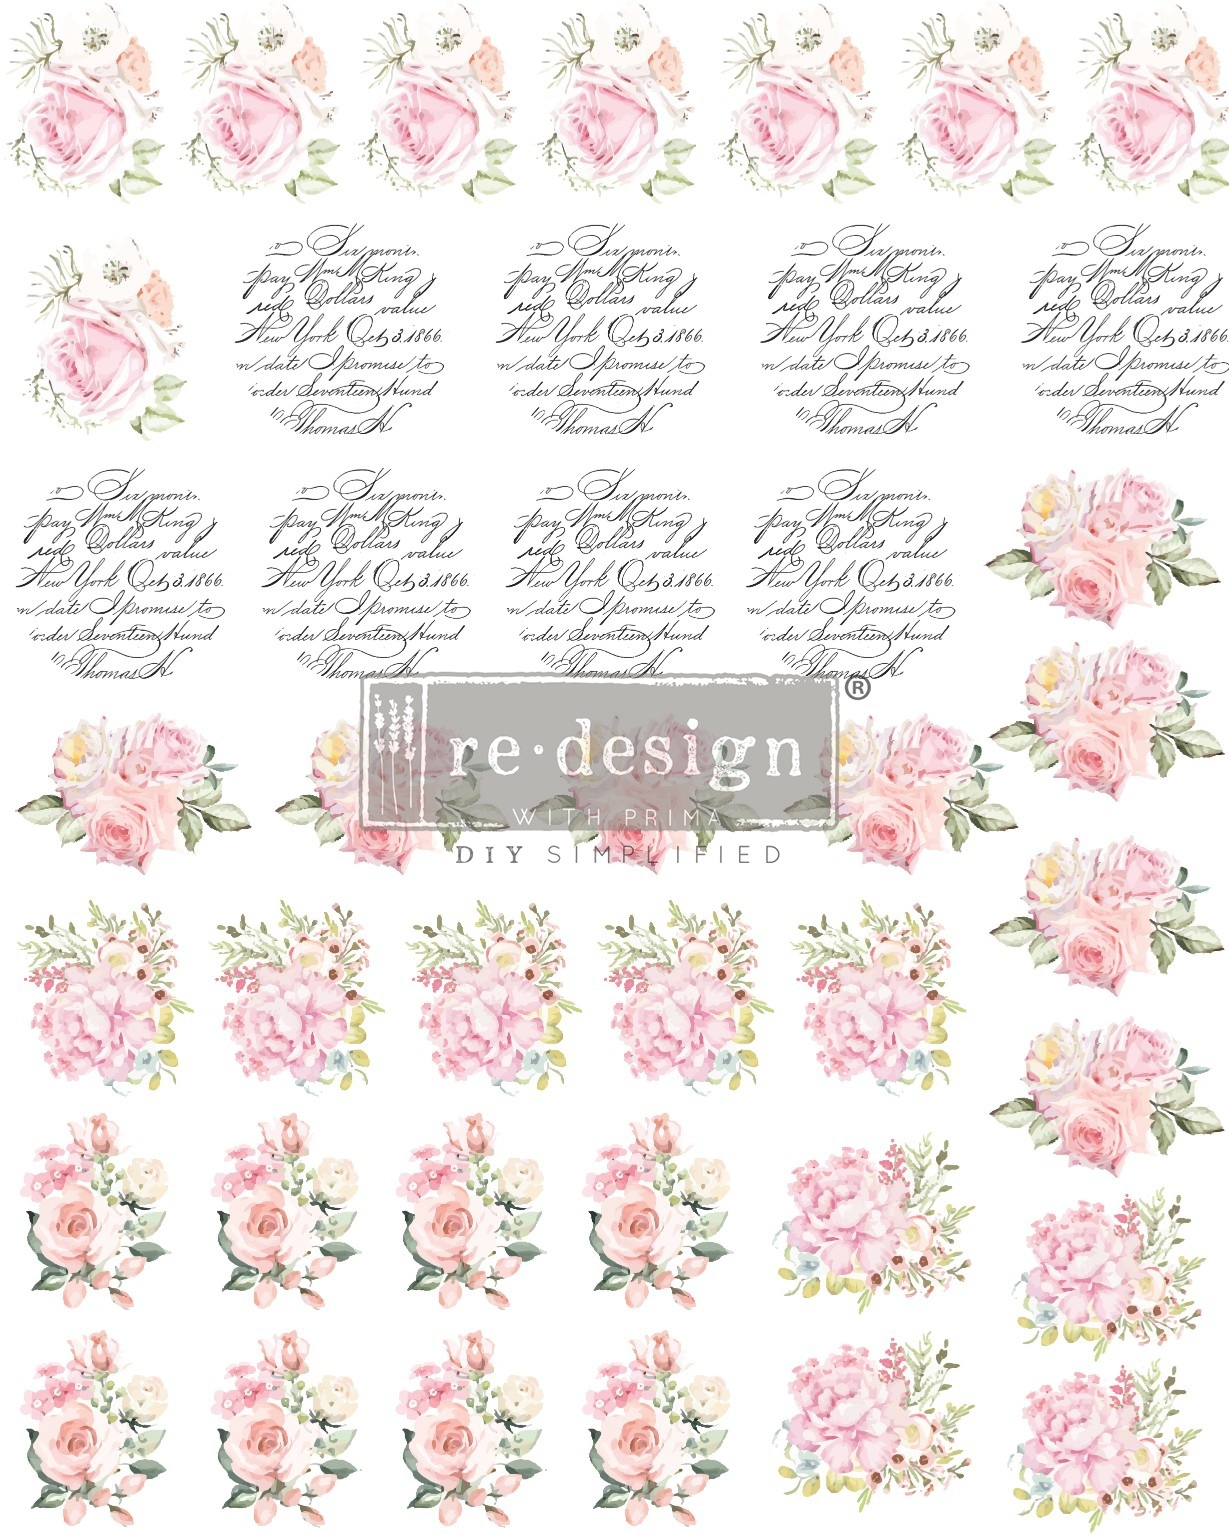 Redesign with Prima Redesign - Knob Transfer - May Flowers